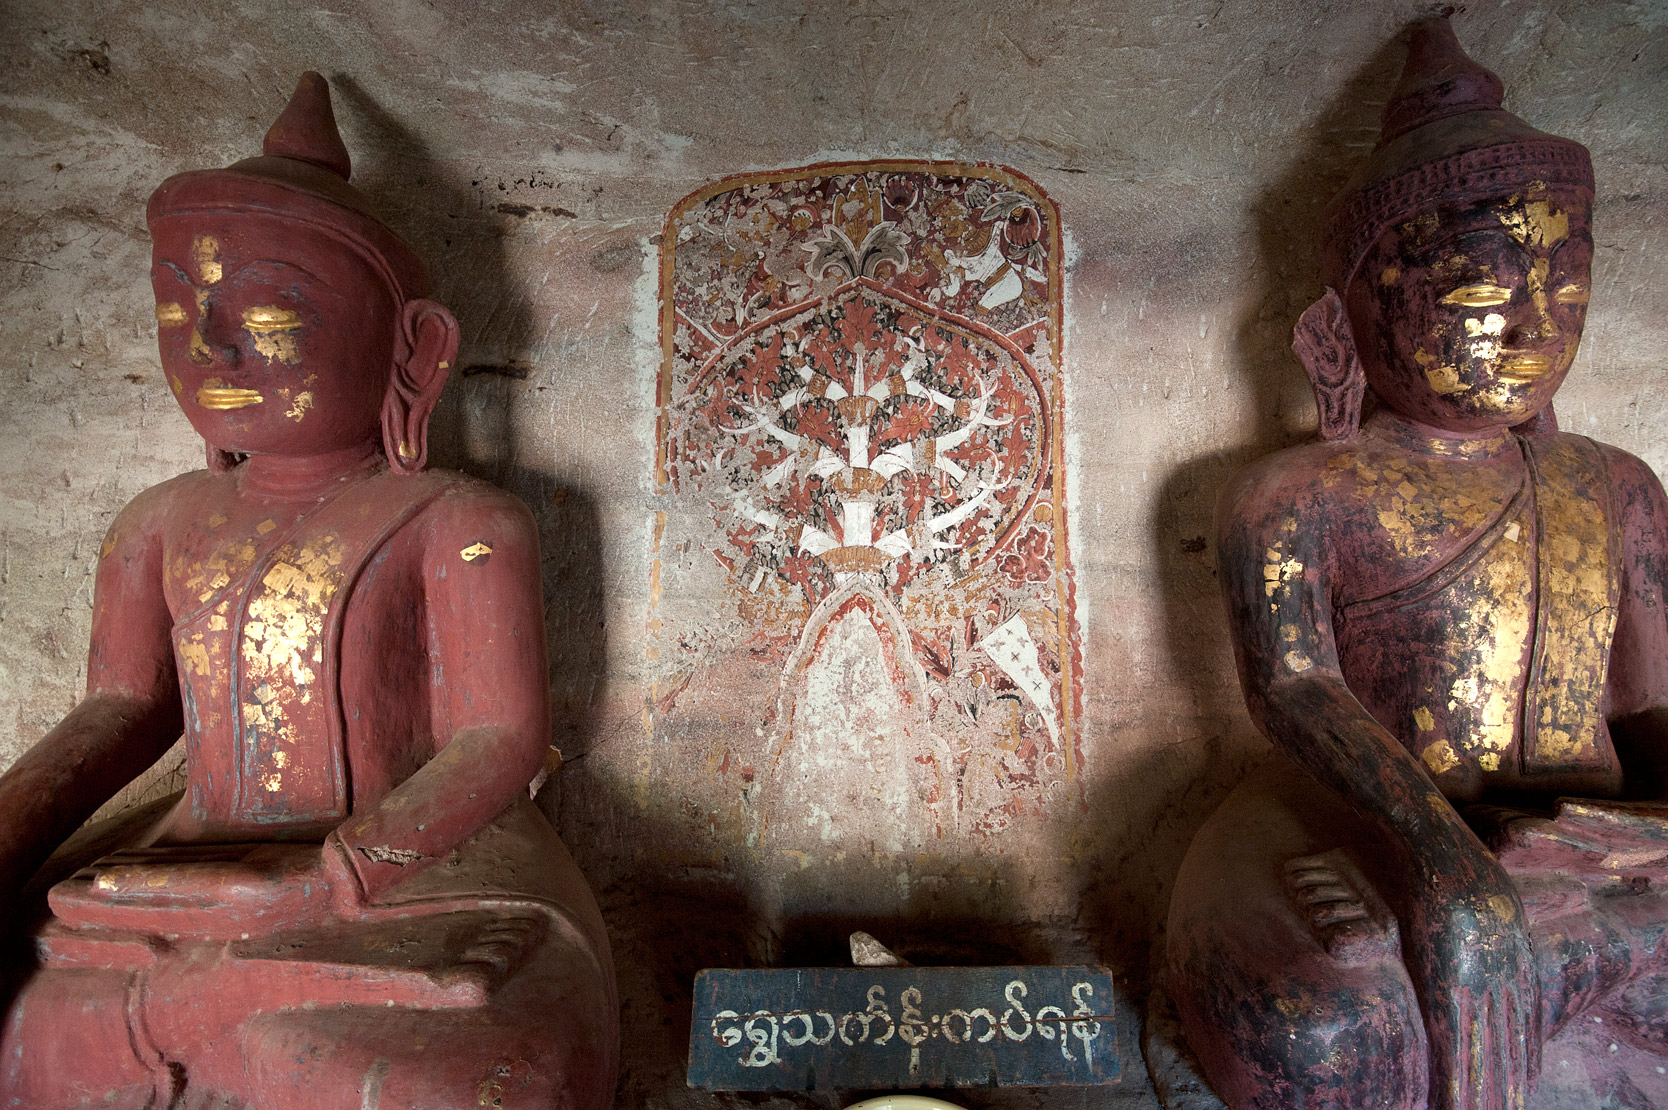 Buddha statues in one of the 947 Hpowindaung sandstone caves, 18th century paintings on the walls, Monywa, Sagaing District.